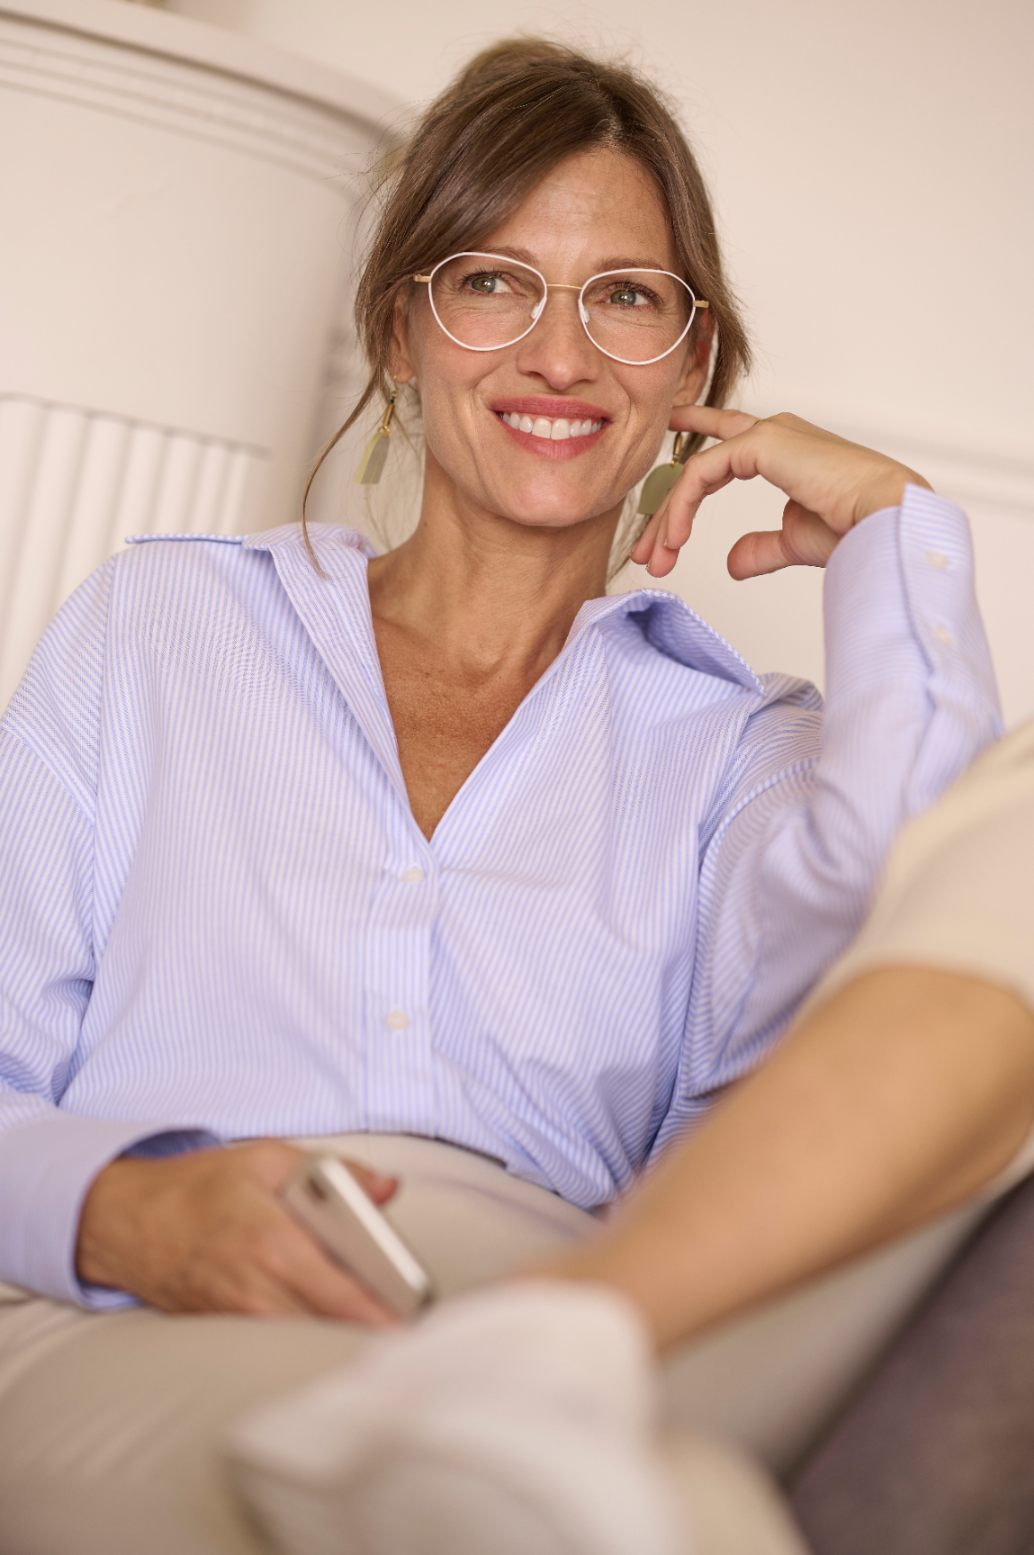 Woman wearing glasses sitting and smiling while looking away